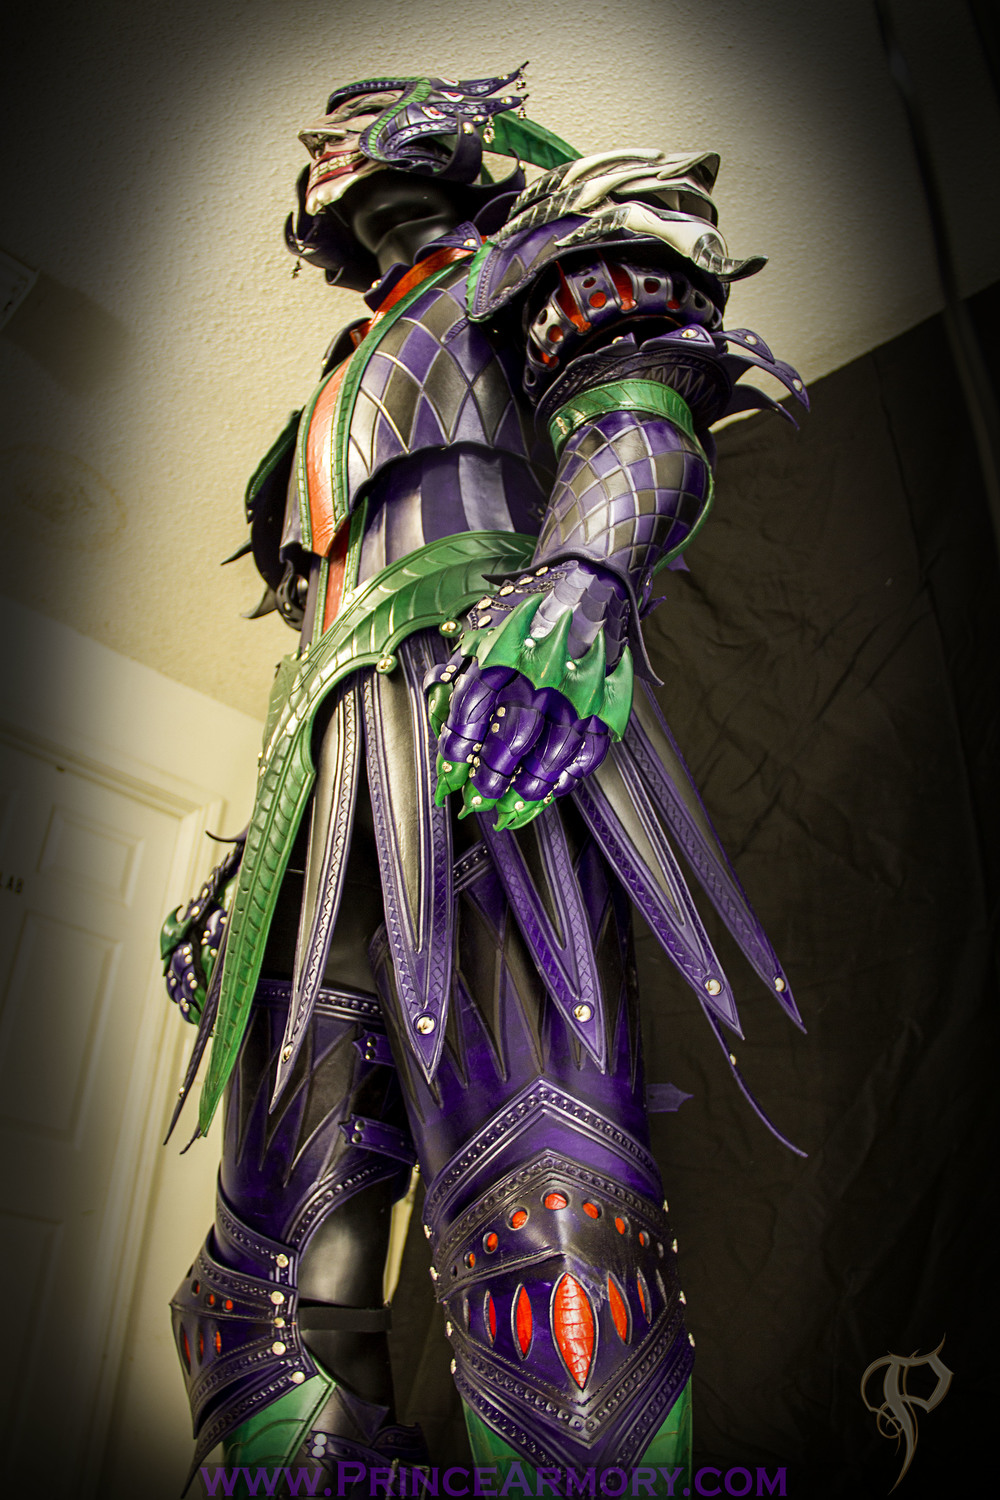 leather_medieval_joker_armor_preview_by_azmal-d72m8b0.jpg